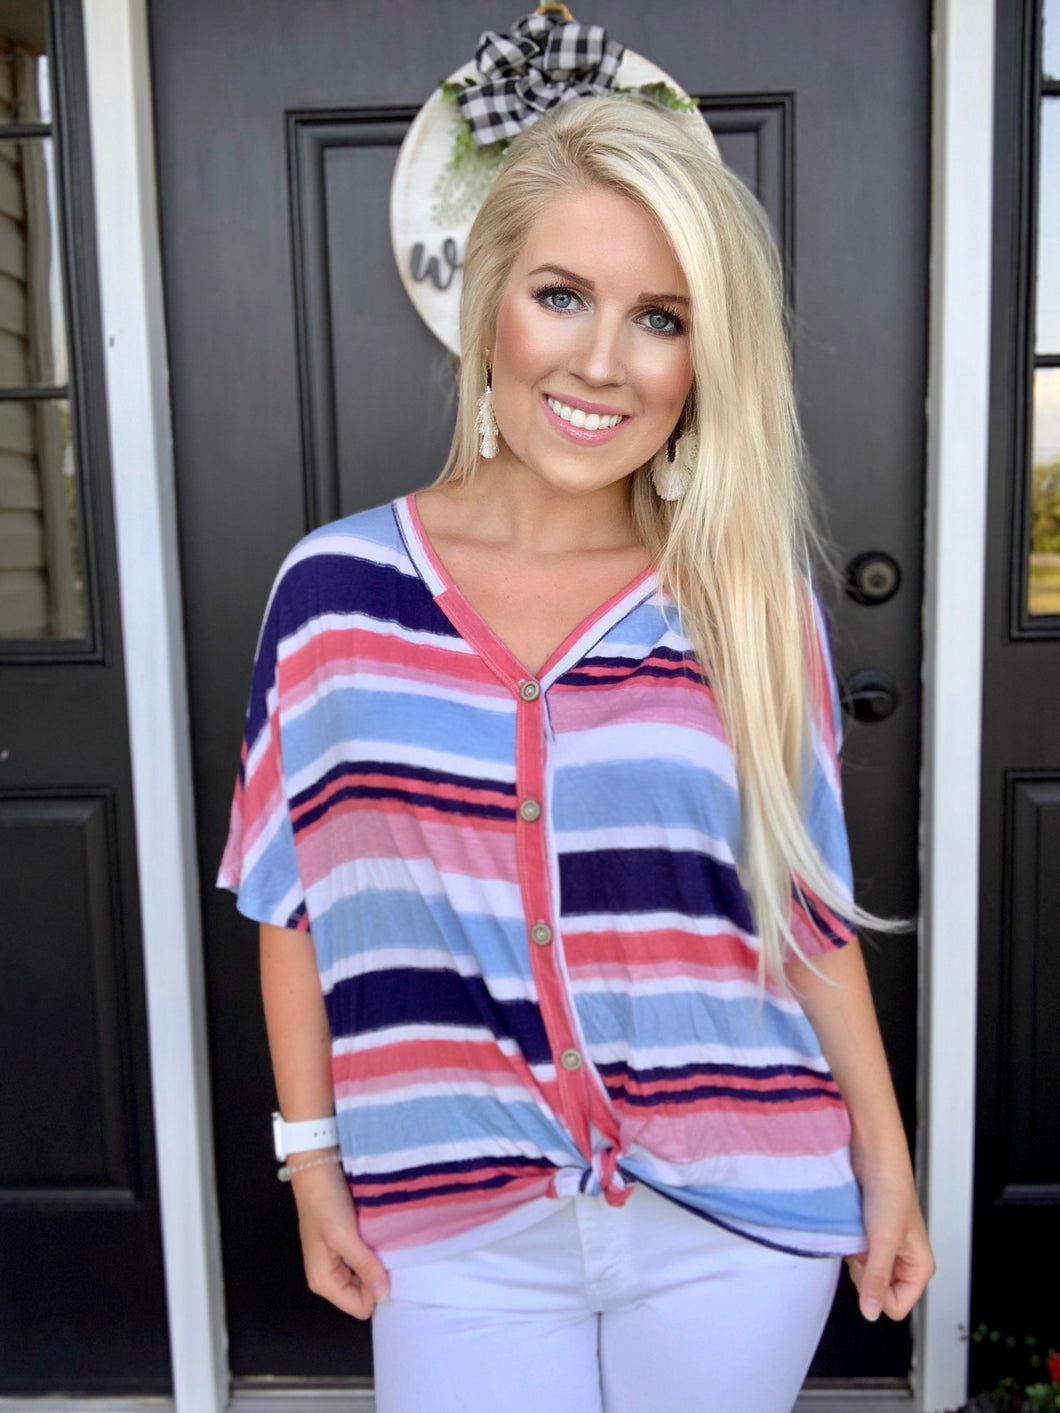 Pink + Navy Stripes